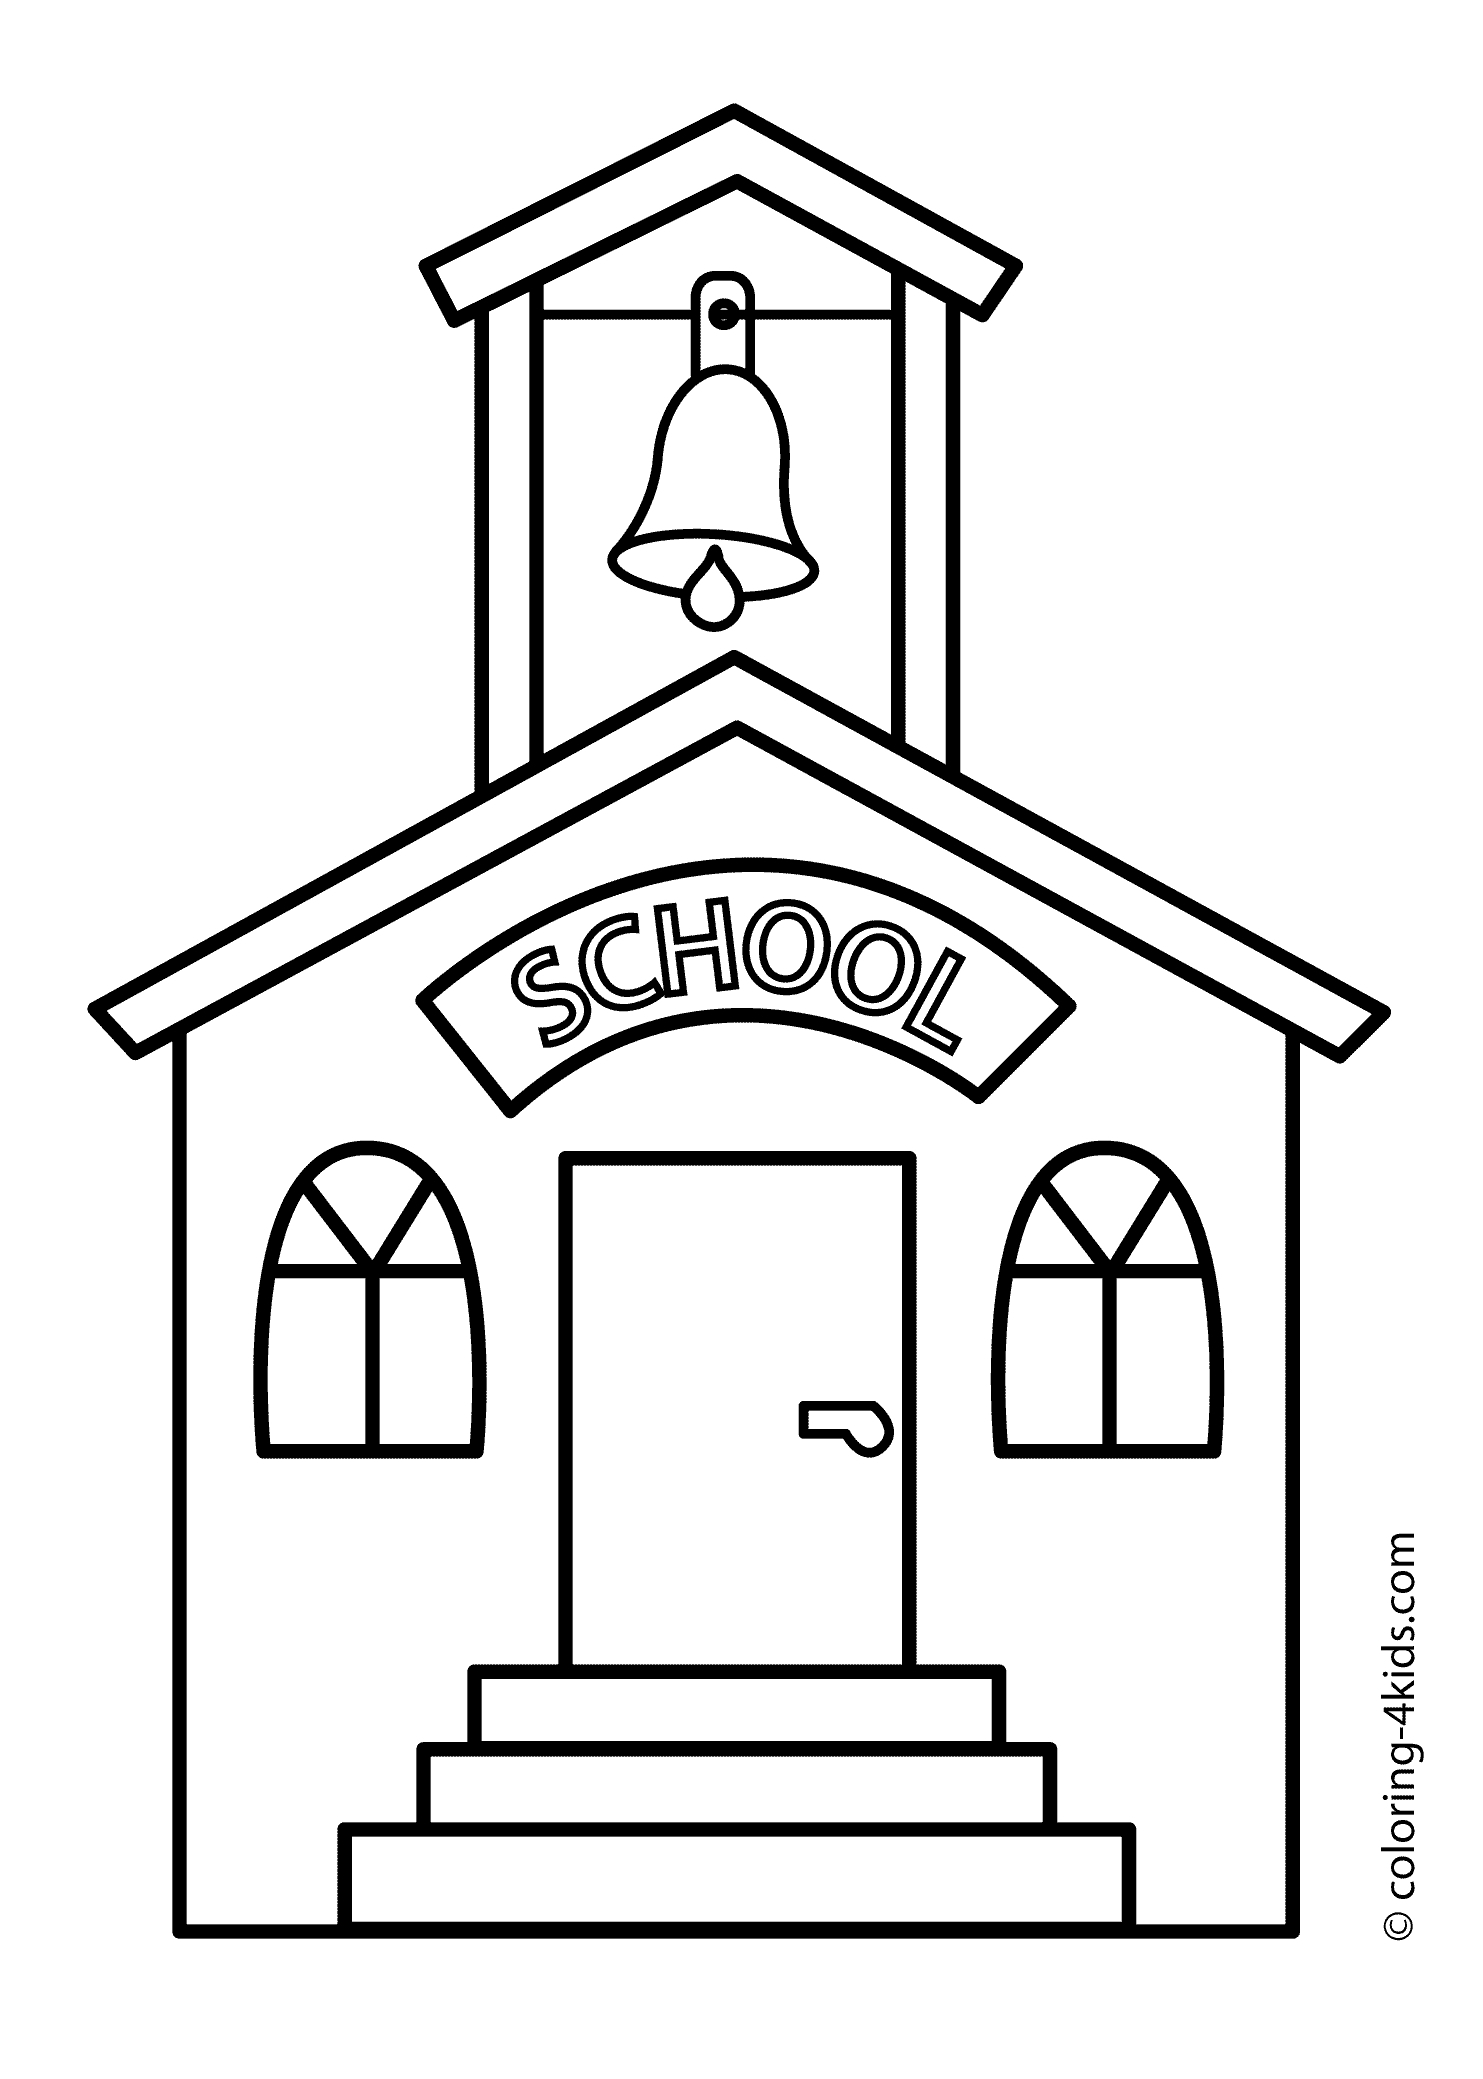 School House Coloring Page Download Of Coloring Pages School House Coloring Pages Wallpaper Download